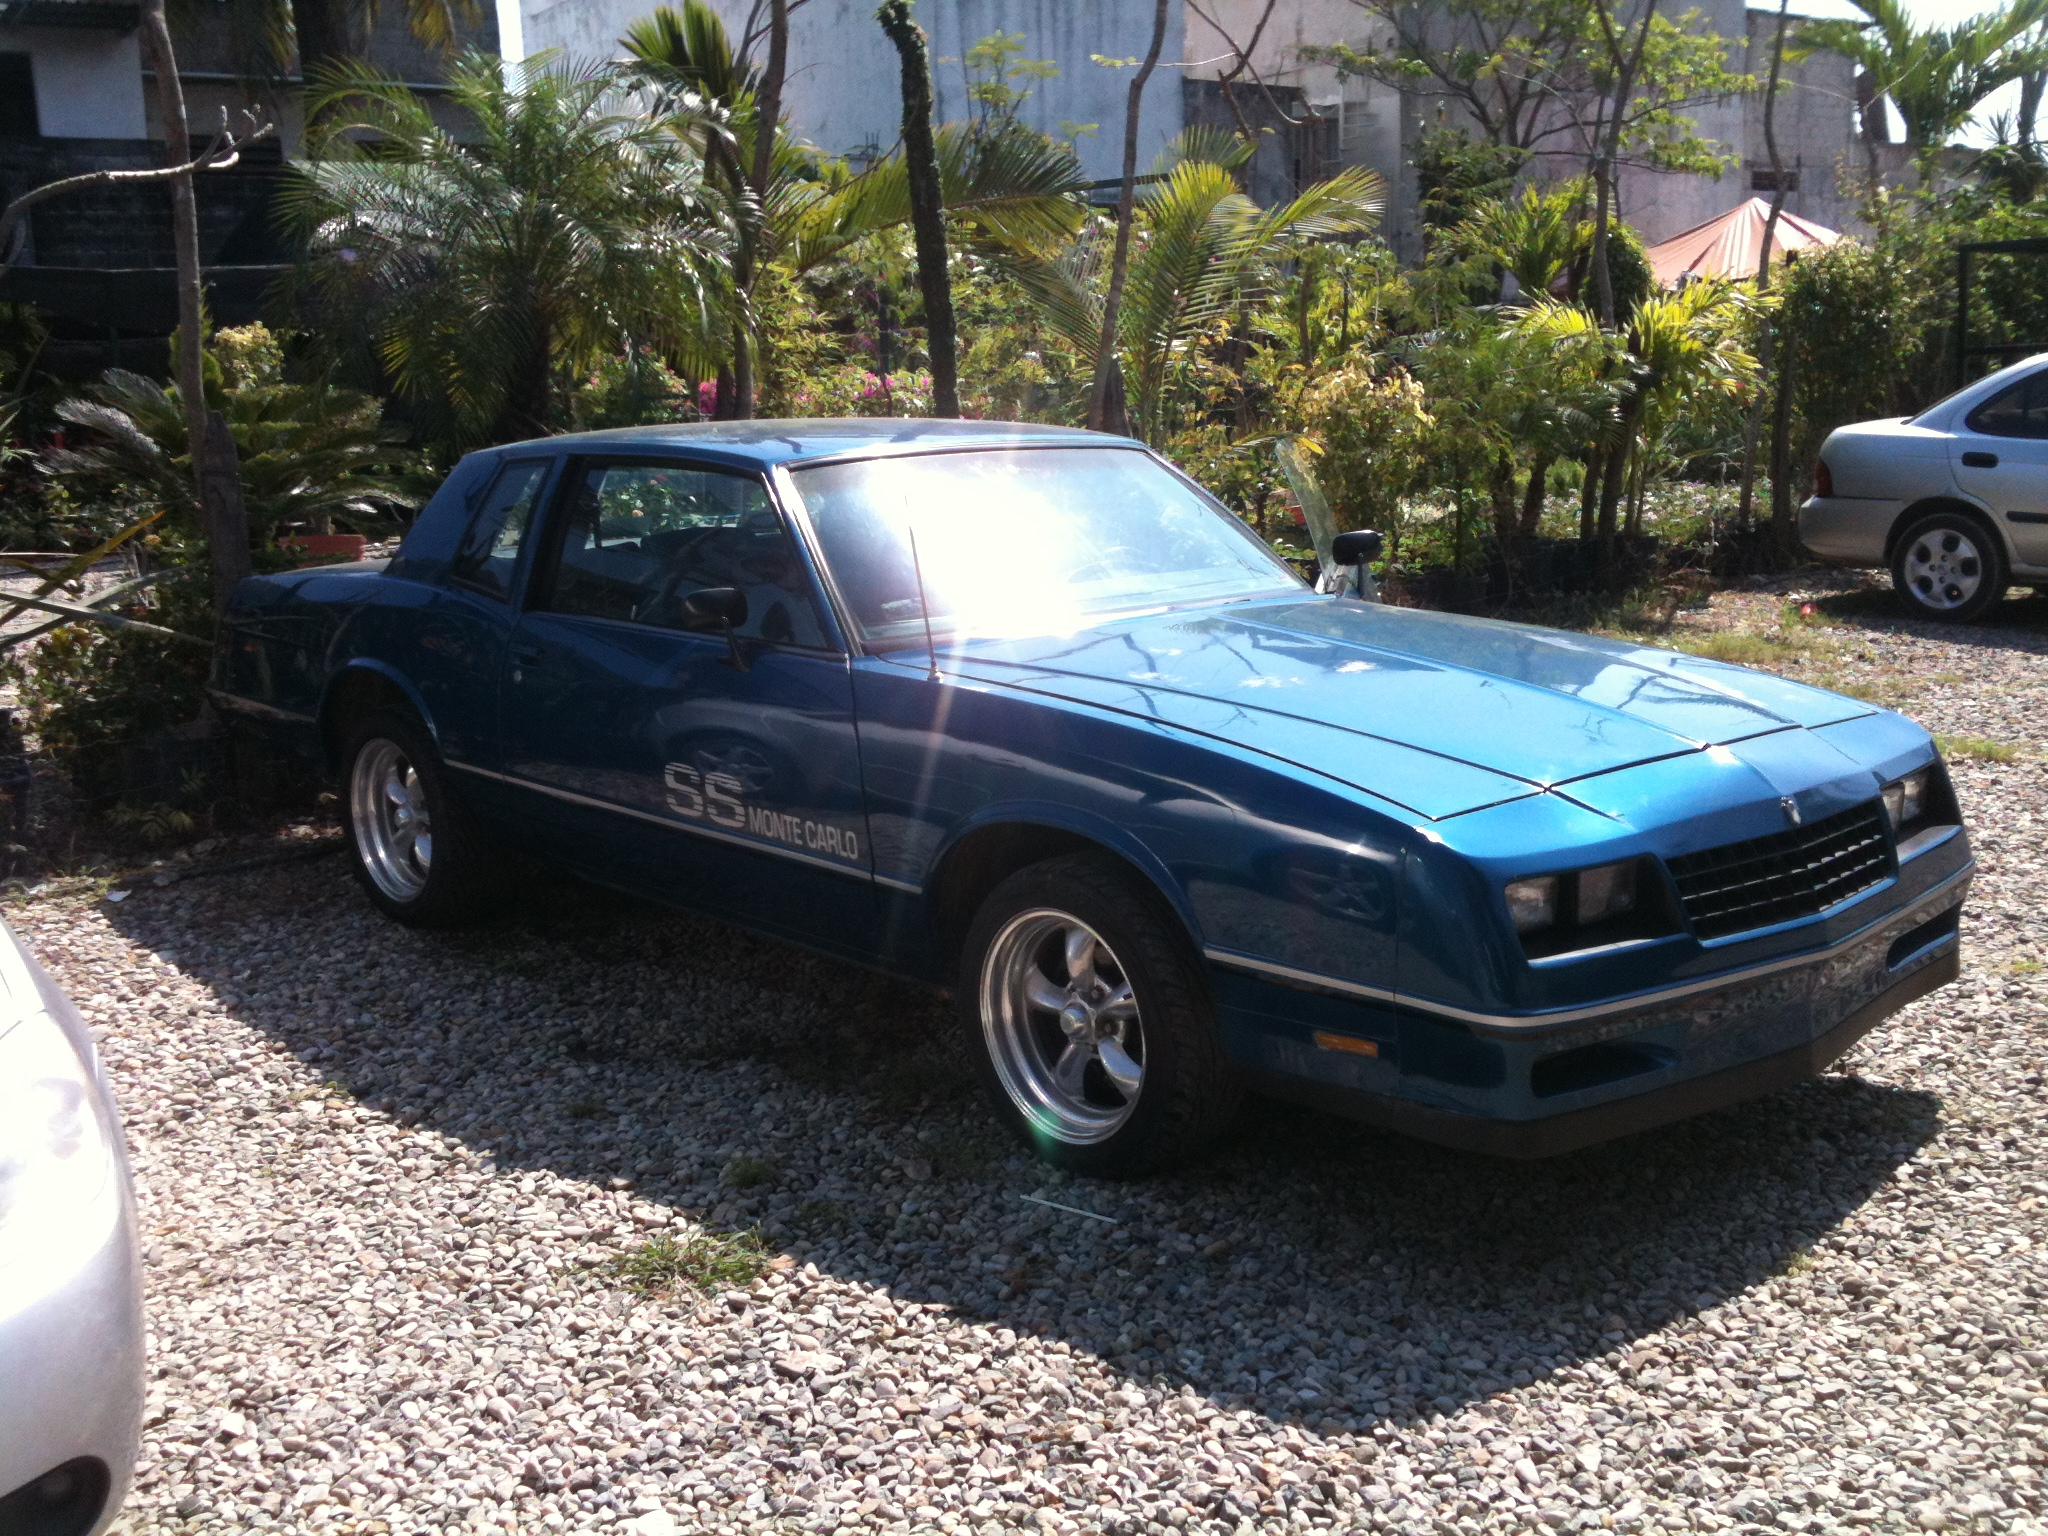 Mexican Monte Carlo SS VIN number decoding